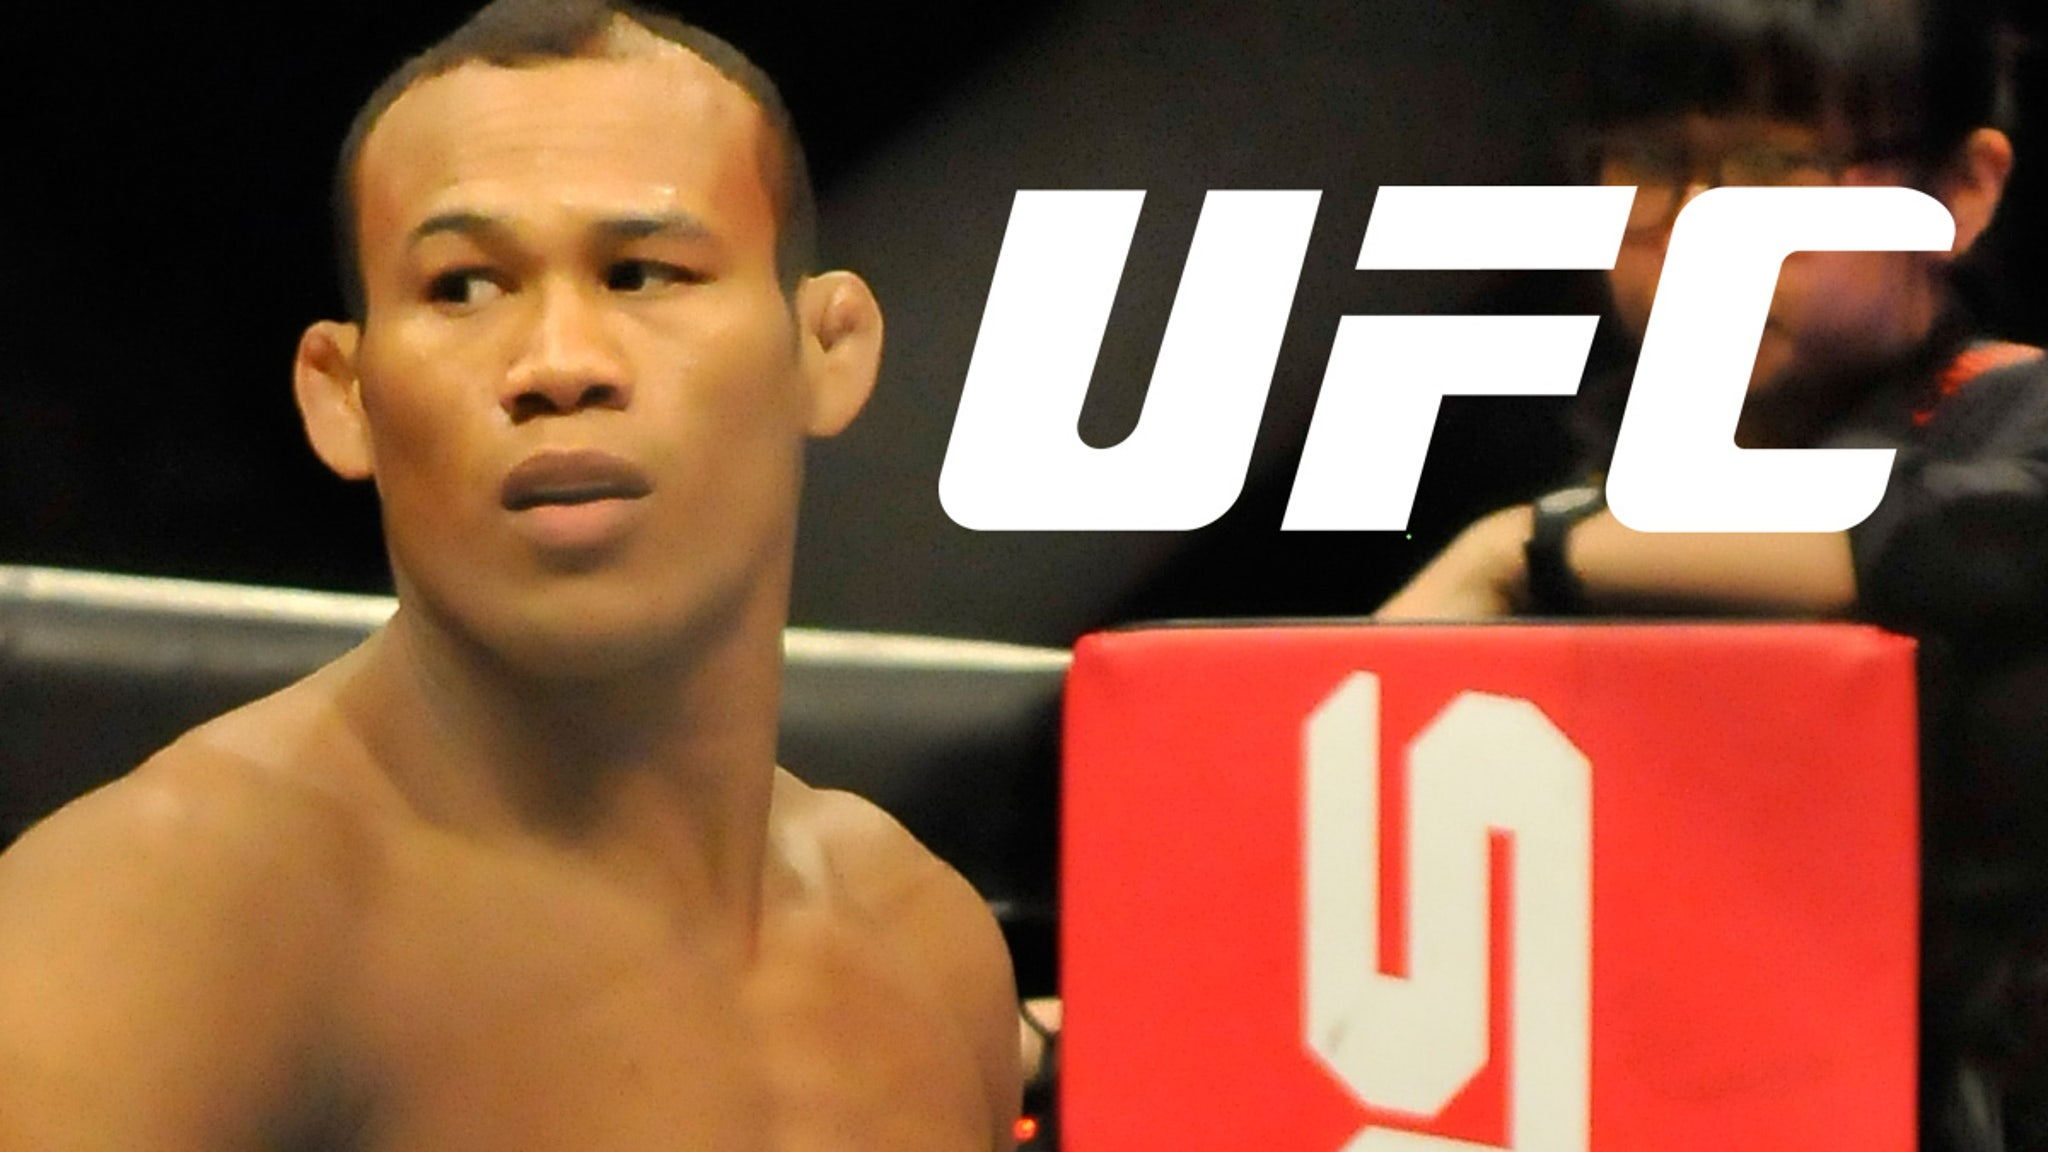 UFC's Jacare Souza Tests Positive for COVID-19, Out of UFC 249